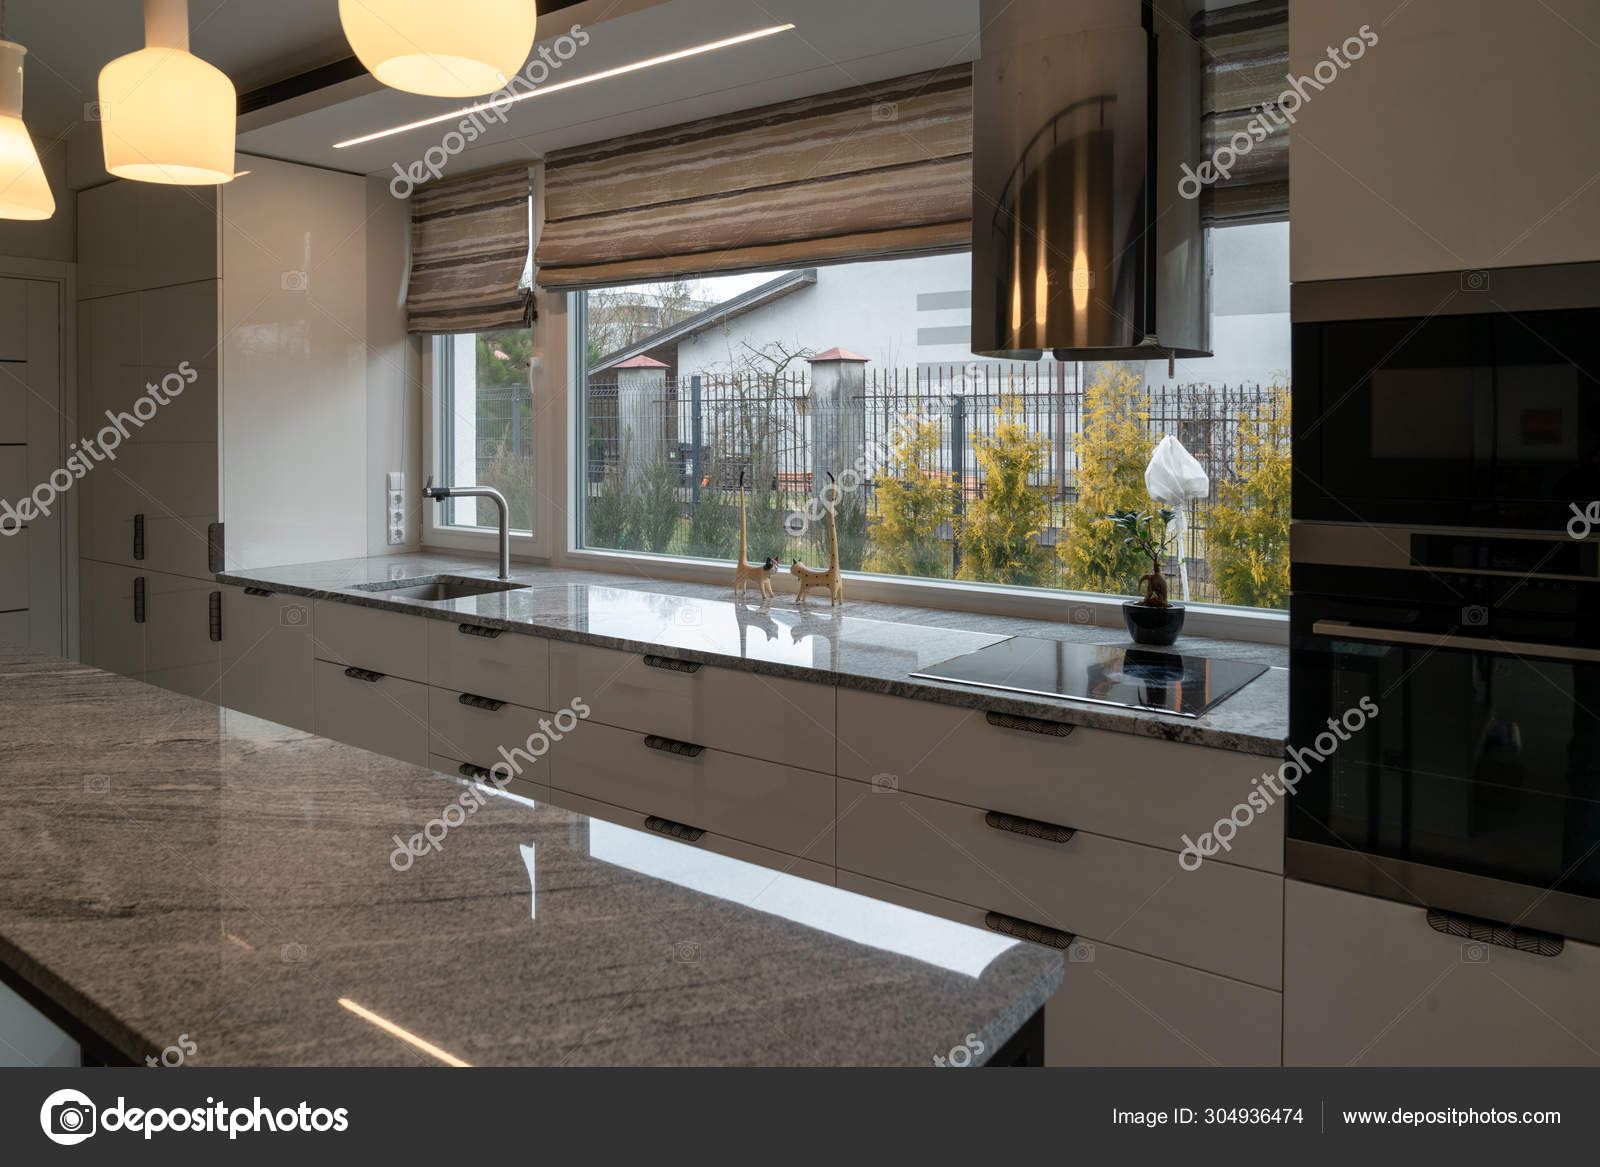 Modern Kitchen Furniture Marble Worktops Drawers Cabinets Faucet Kitchen Sink Stock Photo C Editosfoto 304936474